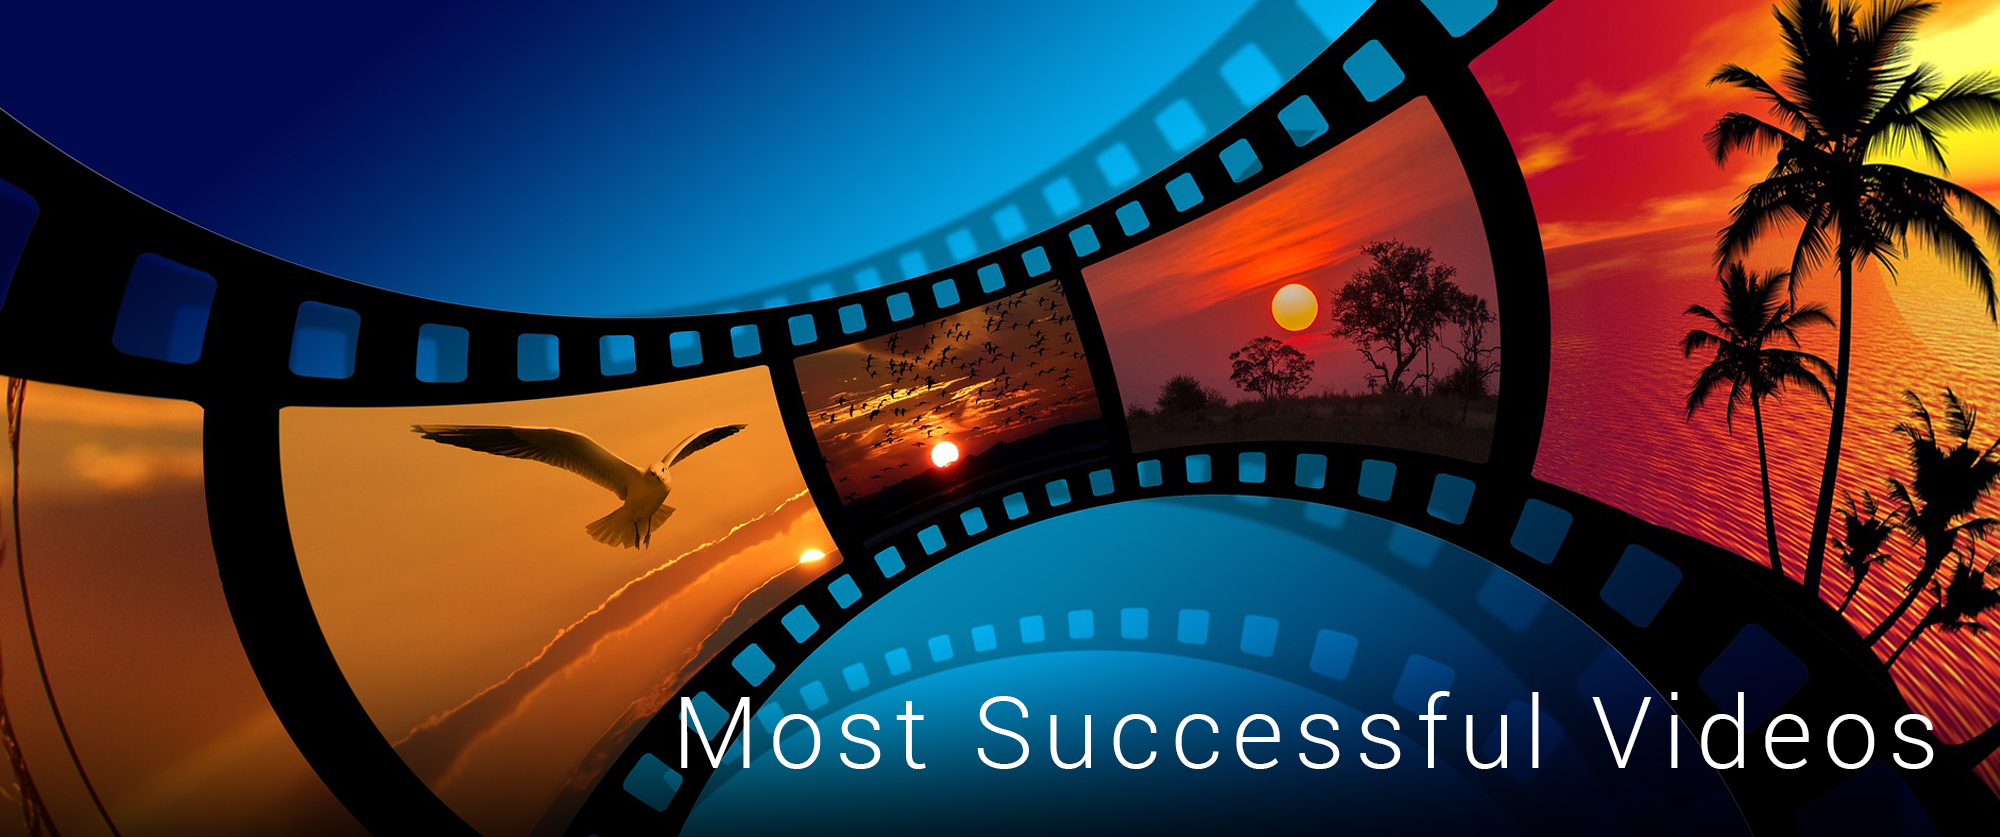 How to Make the Most Successful Video Ever